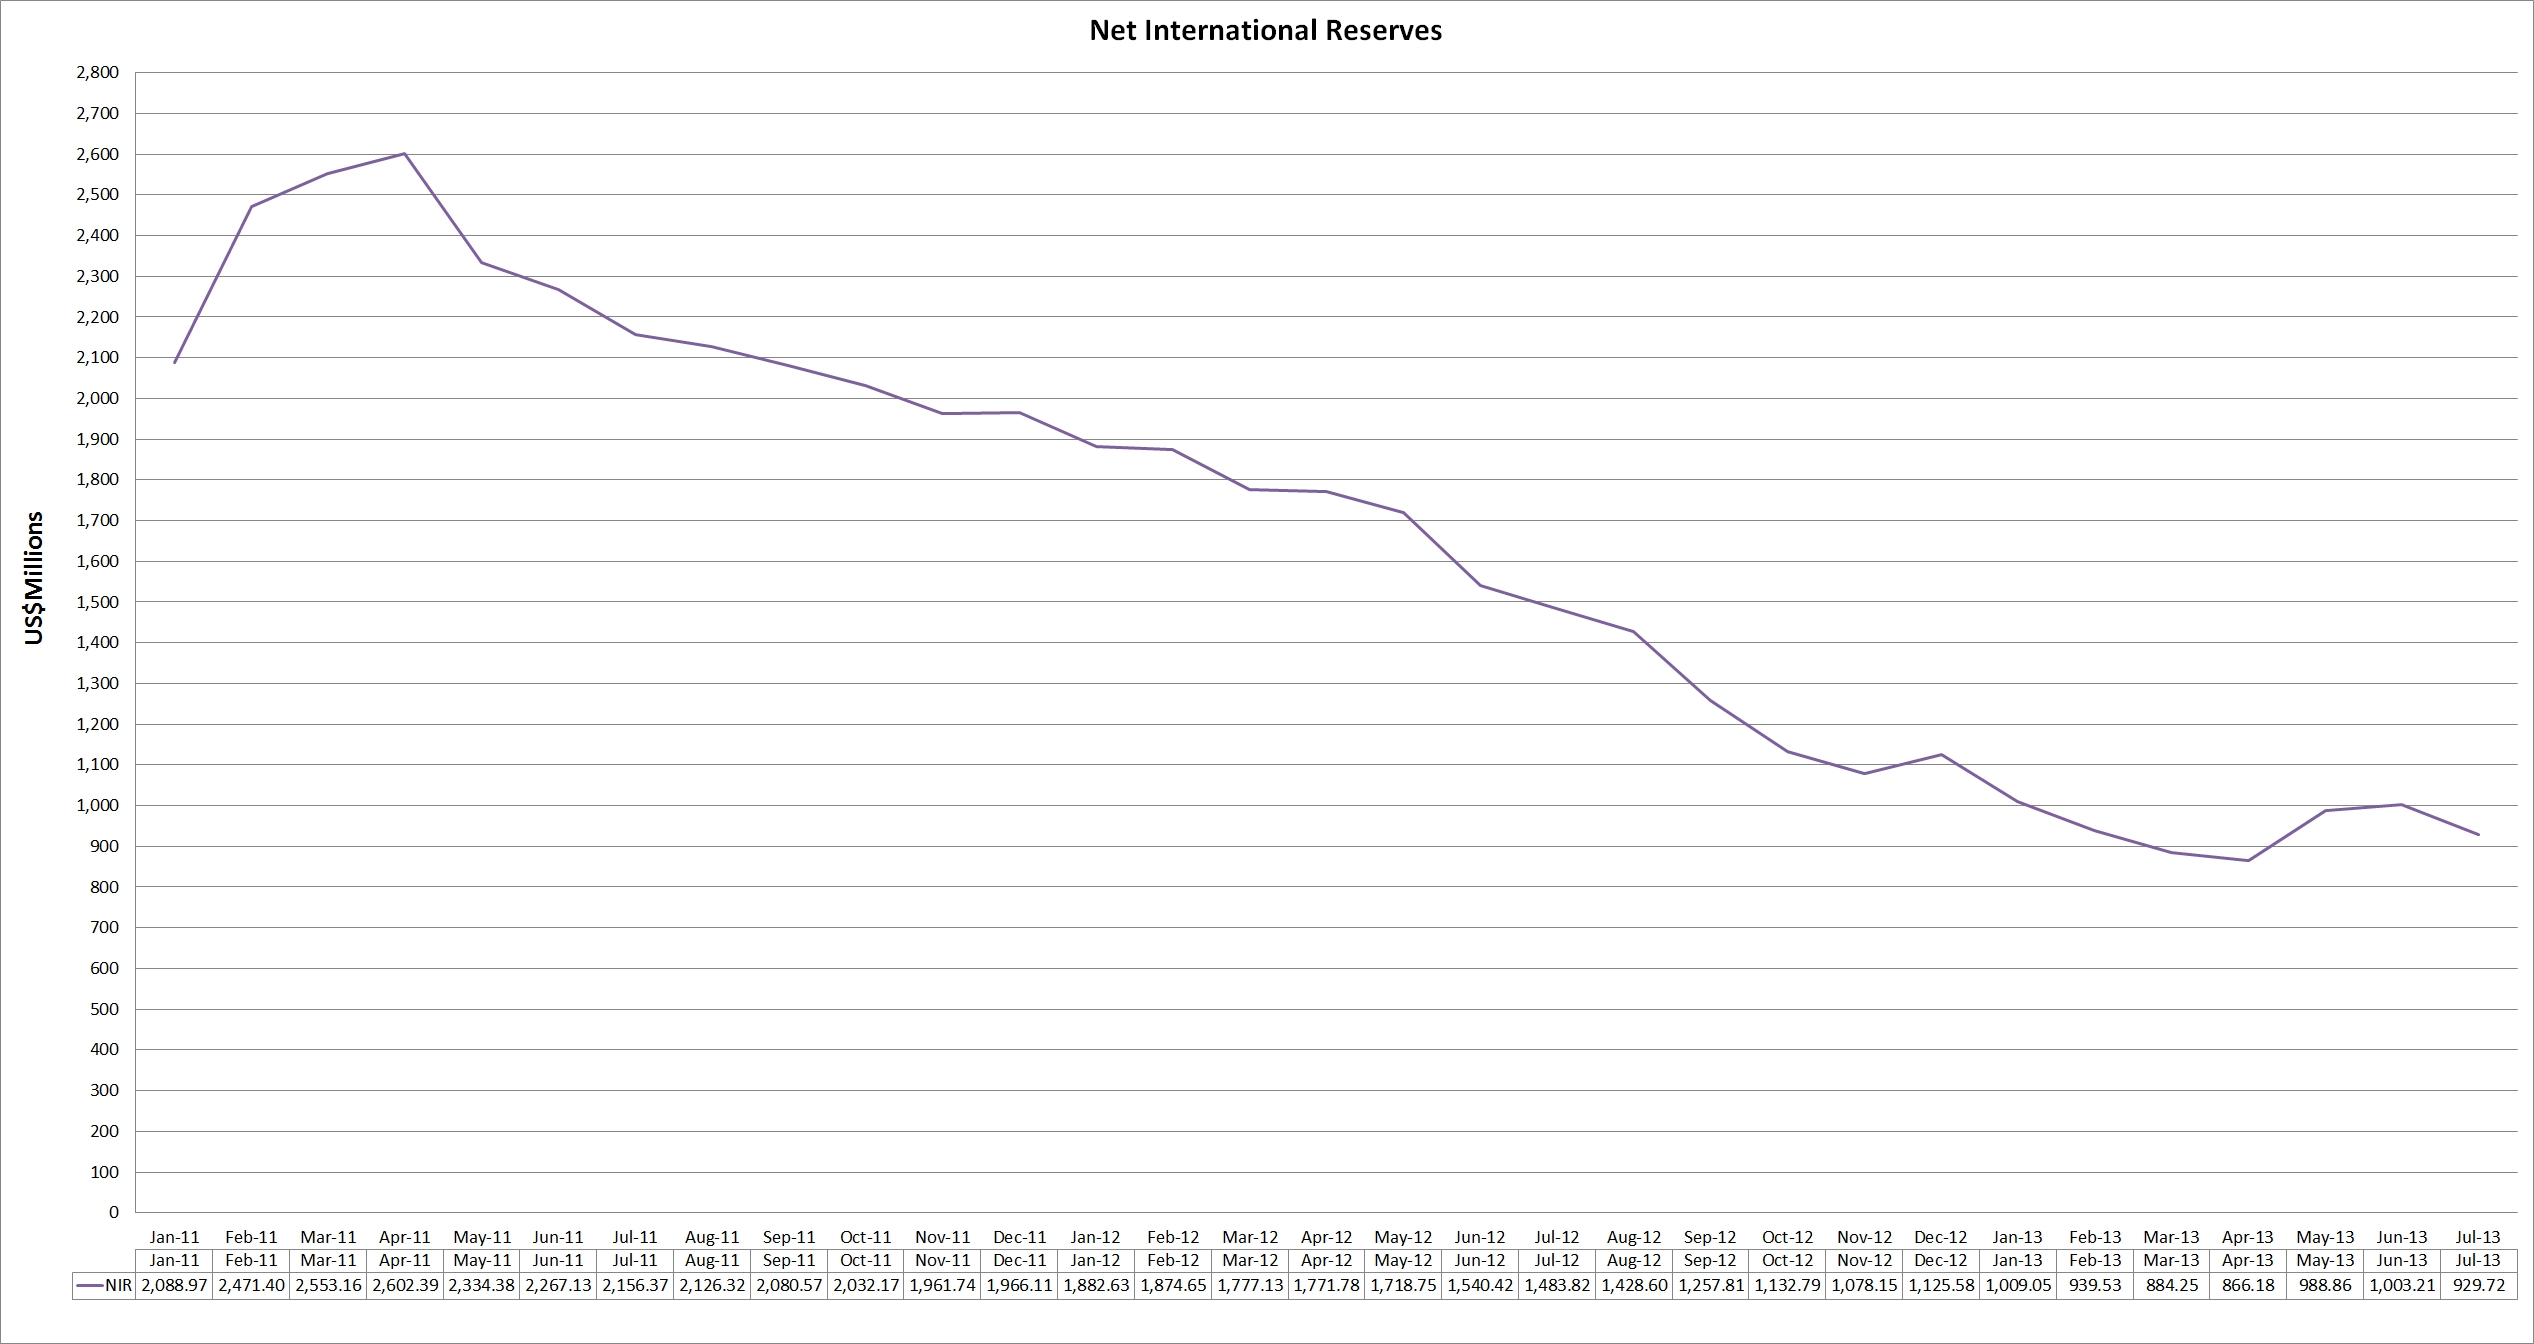 net_international_reserves